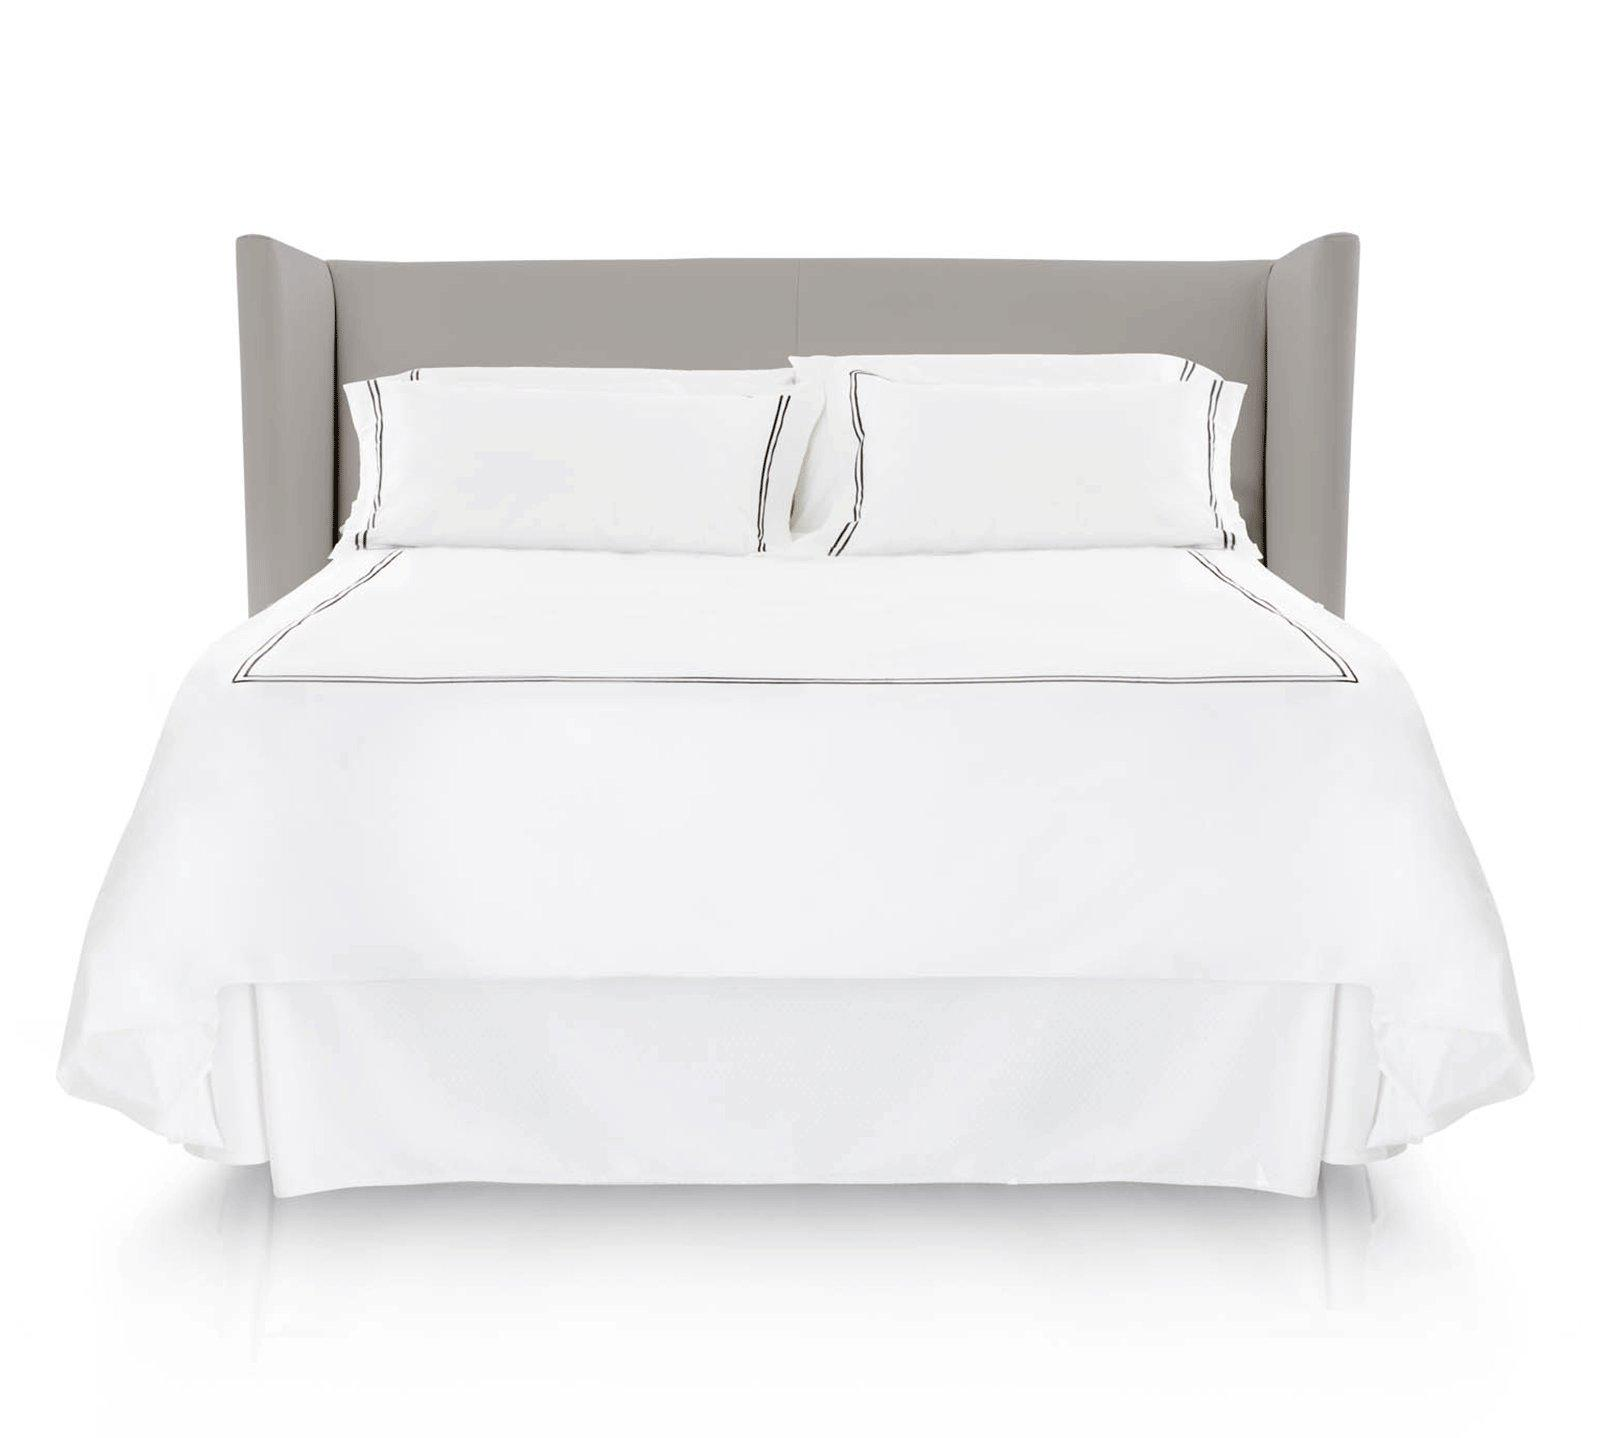 Malouf King Woven Bed Skirt